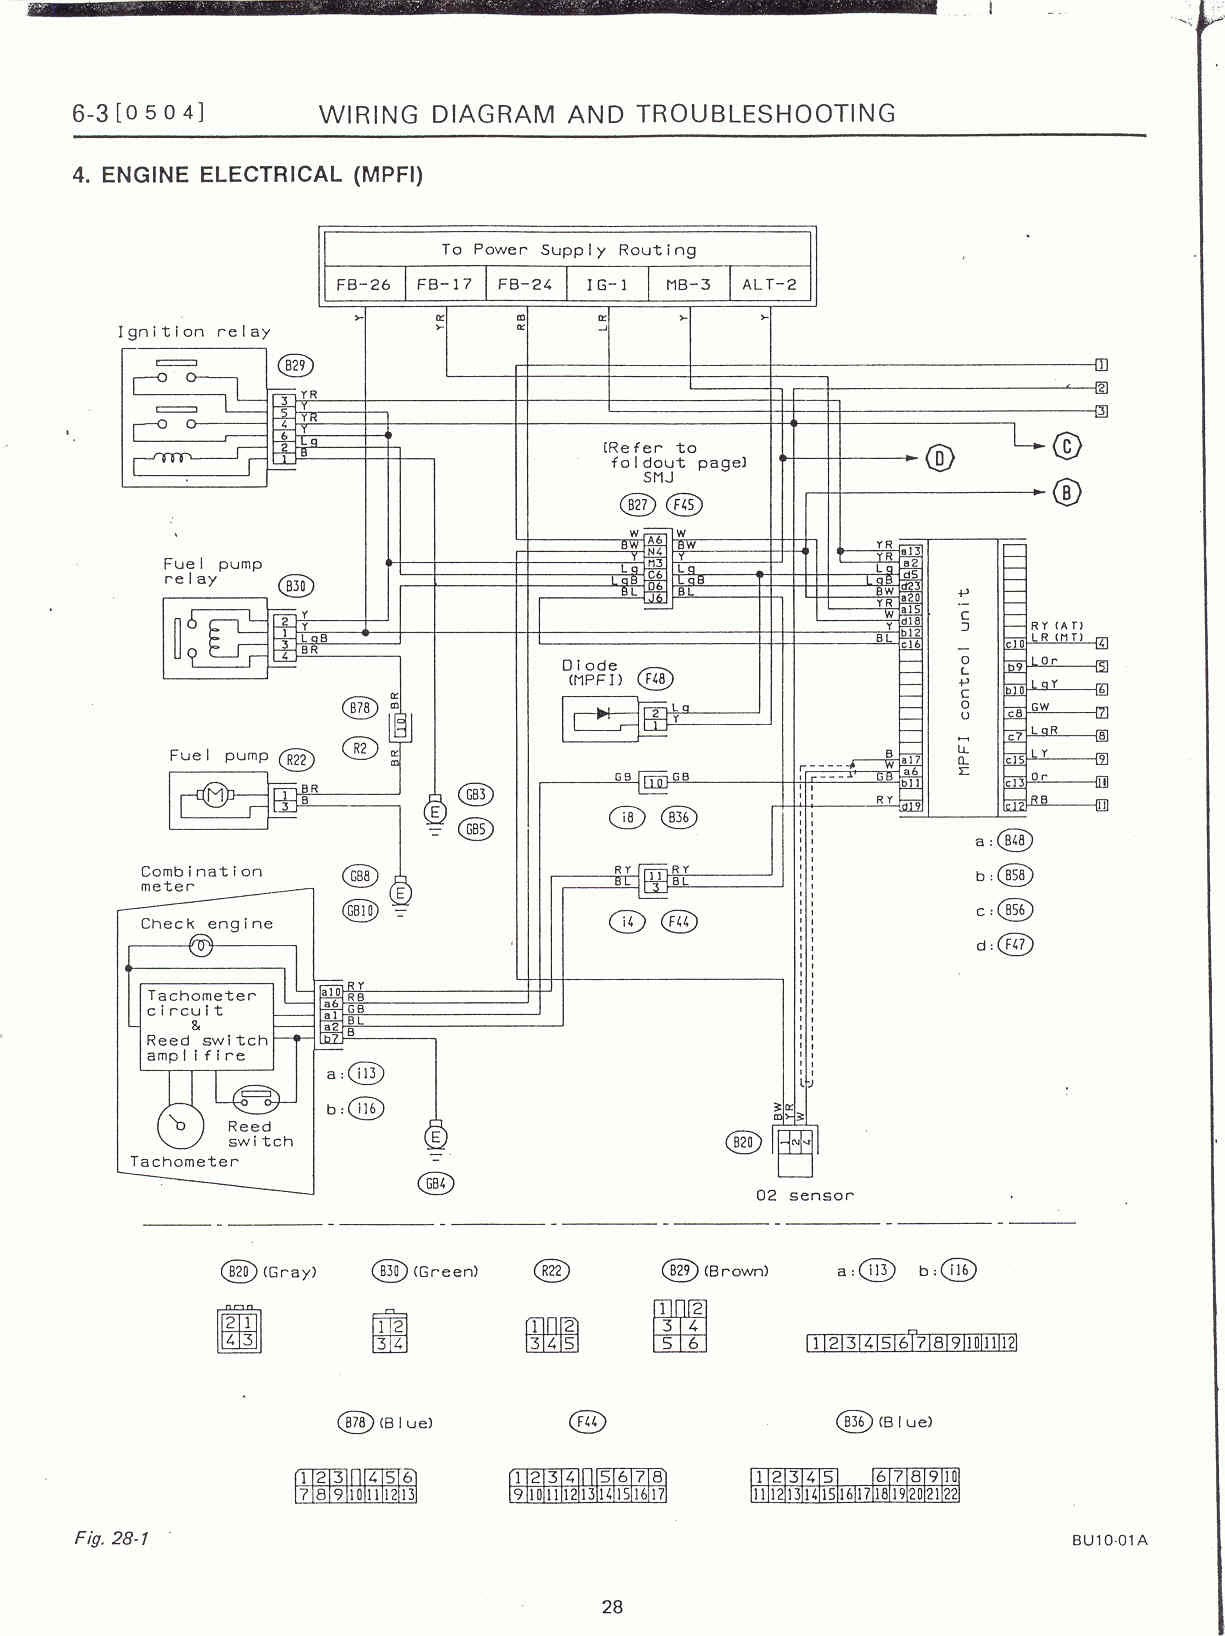 DIAGRAM] Subaru Outback User Wiring Diagram 2010 FULL Version HD Quality Diagram  2010 - SPEAKERDIAGRAMS.ABETEECOLOGICO.ITspeakerdiagrams.abeteecologico.it